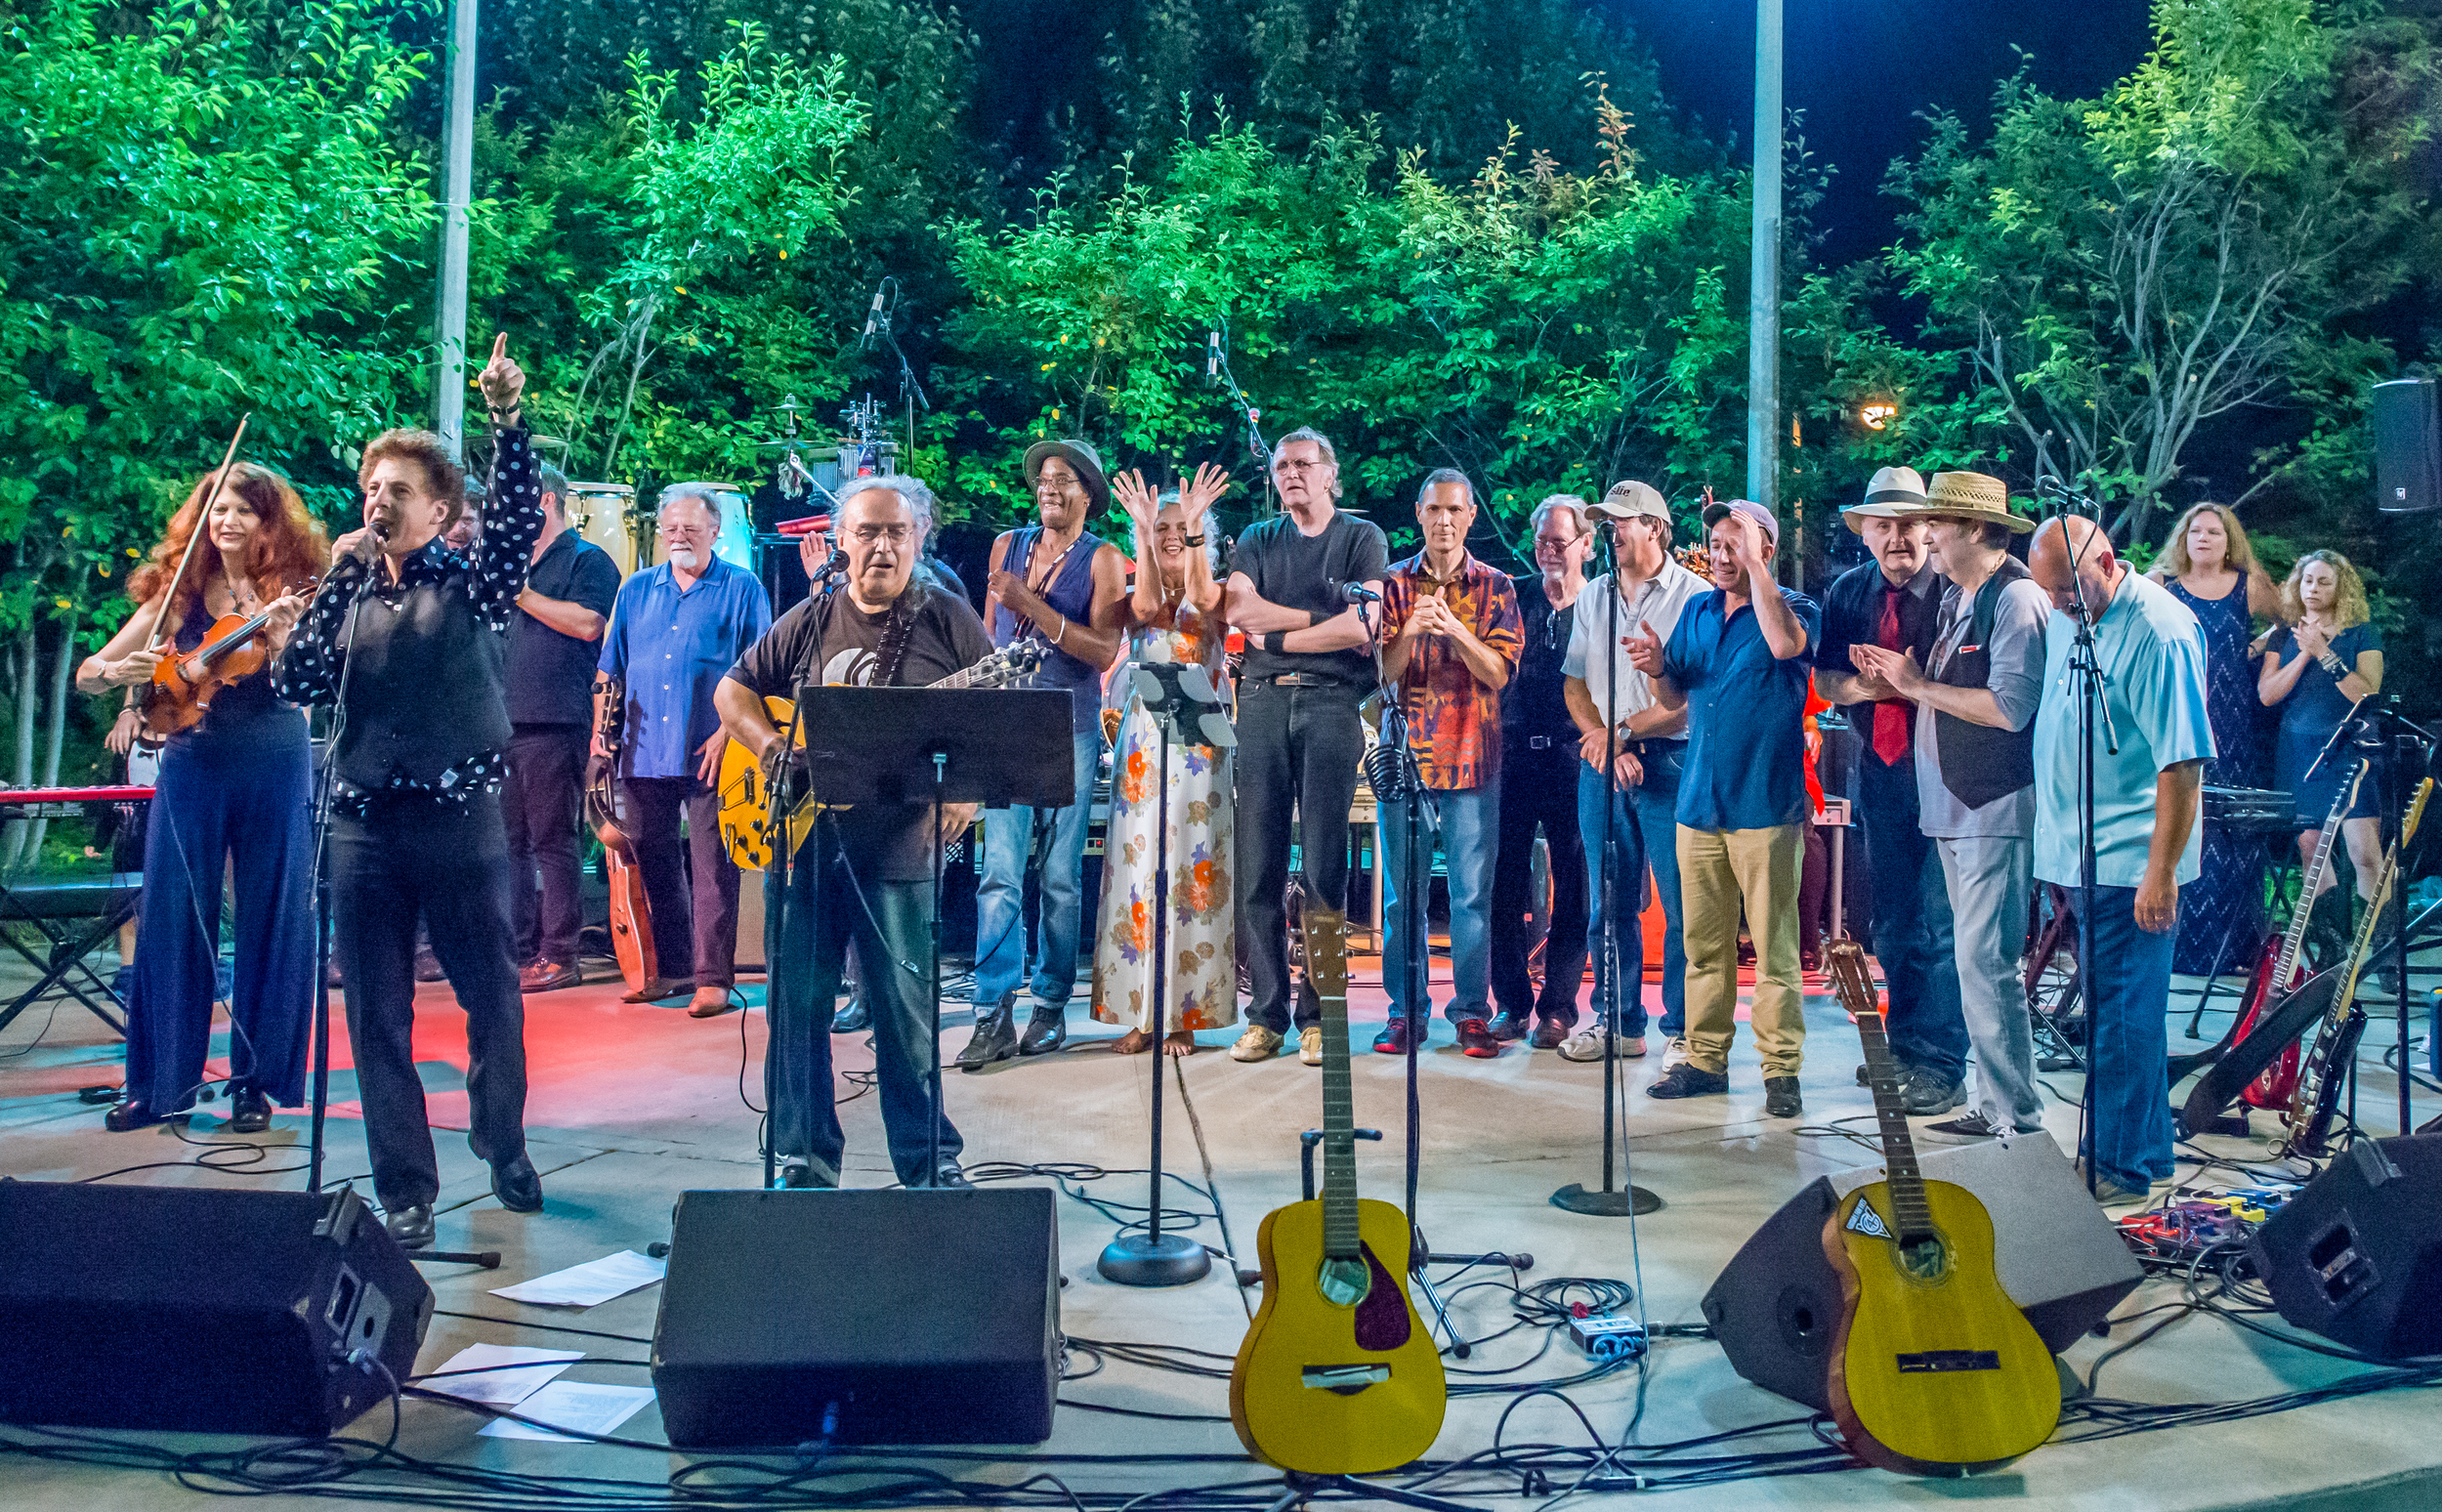 The Ensemble Finale / Salute to the Music of Bob Dylan / The Veterans' Memorial Wolfe Park Amphitheater / St. Louis Park, Minnesota / August 9th, 2014 / Photo by Don Olson